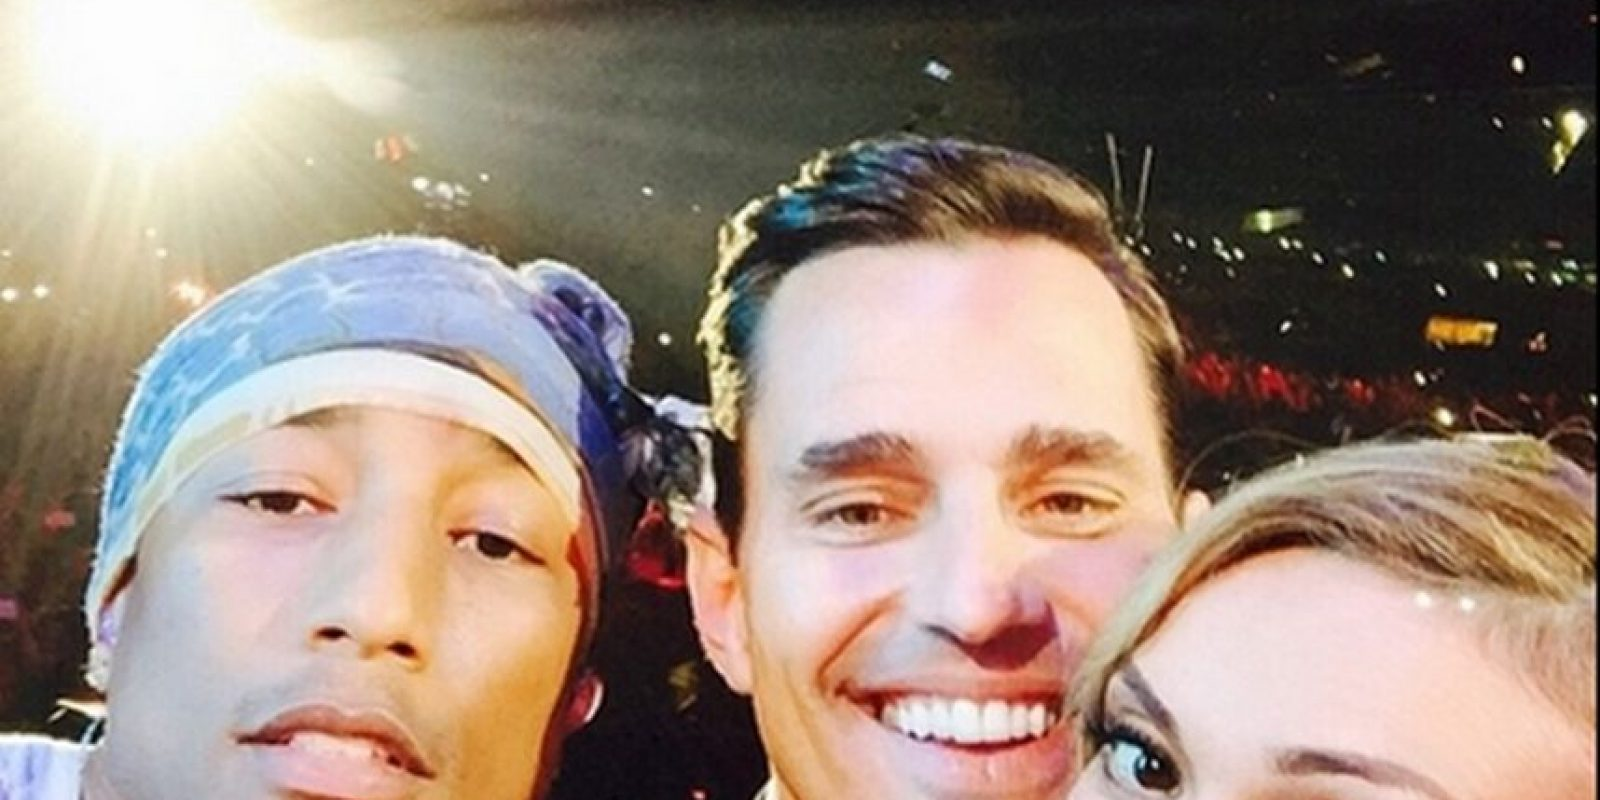 Pharrell, Bill y Giuliana Rancic in Dubái Foto: Instagram